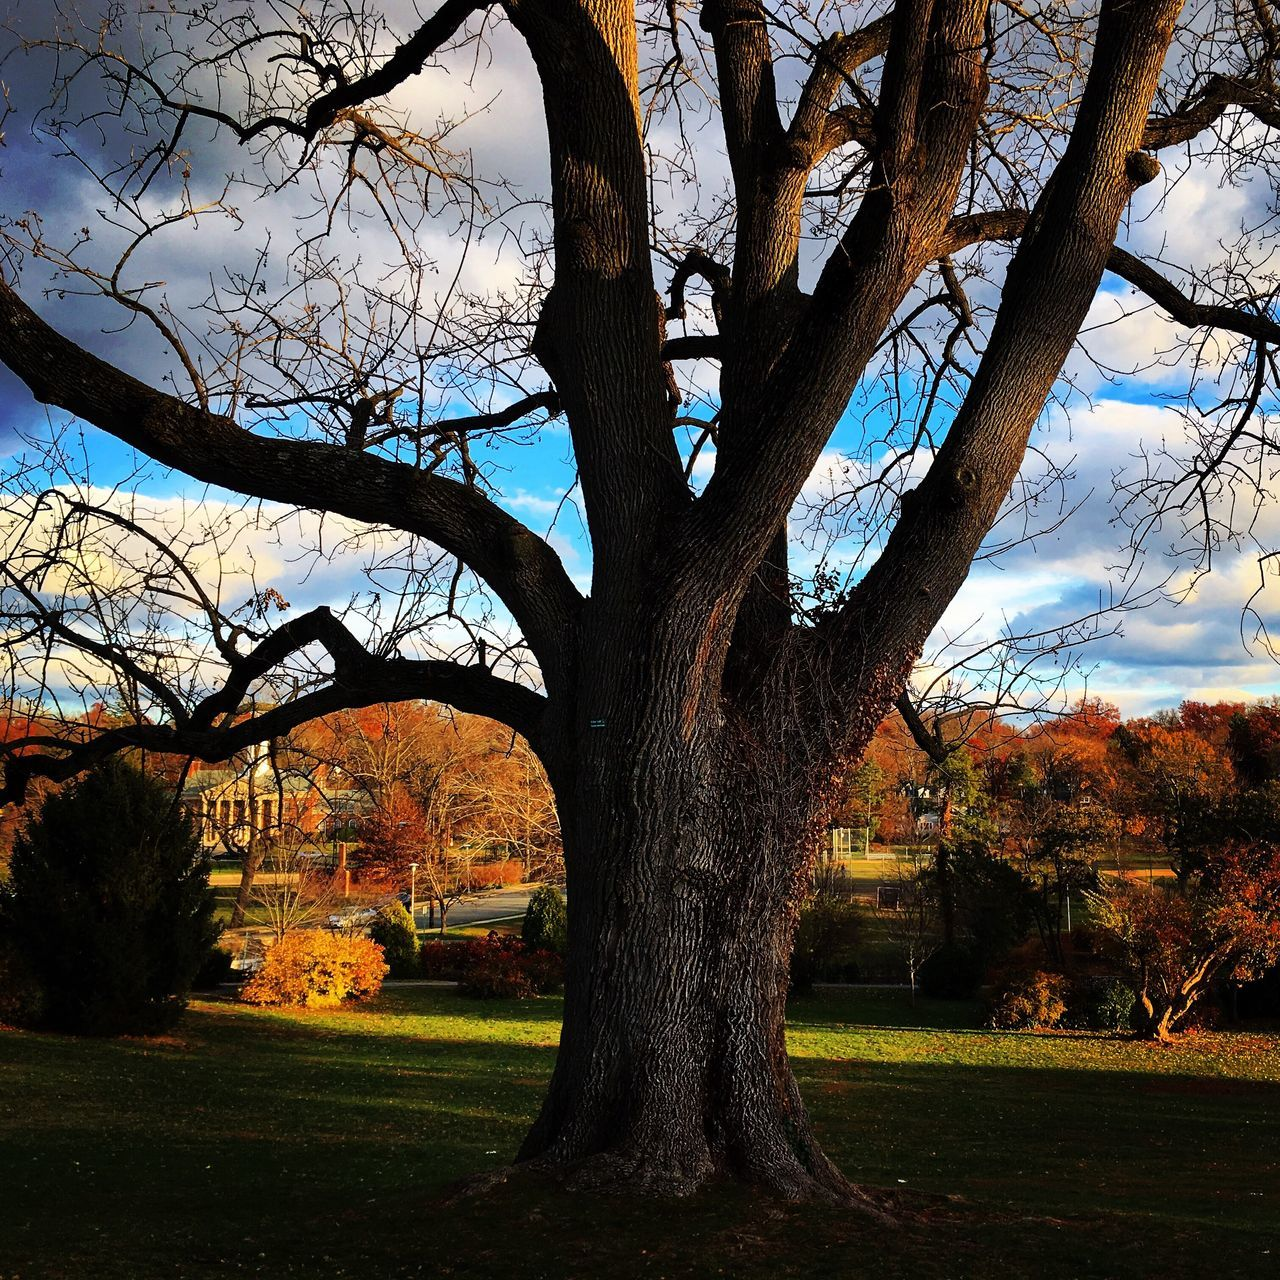 Tree Tree Trunk Nature Branch Outdoors Growth Sky Autumn Bare Tree Beauty In Nature No People Day Single Tree